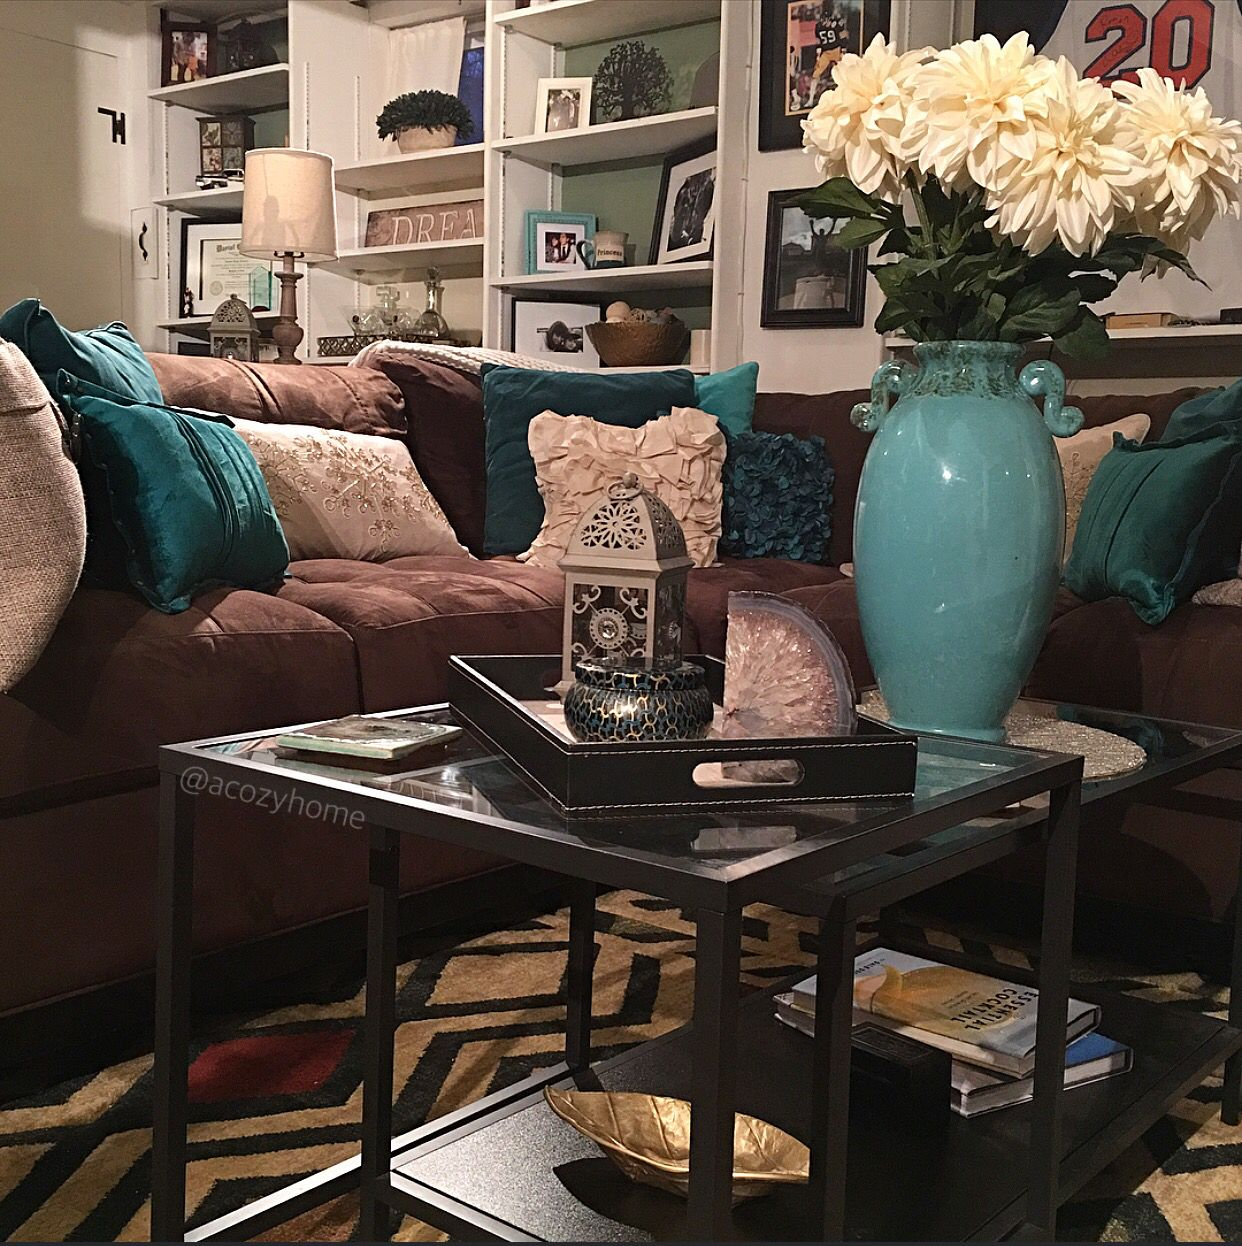 Brown Living Room With Blue Accents Split Level Ranch Decorating Ideas Cozy Couch Teal Turquoise And Built In Shelves Ikea Nesting Table Acozyhome